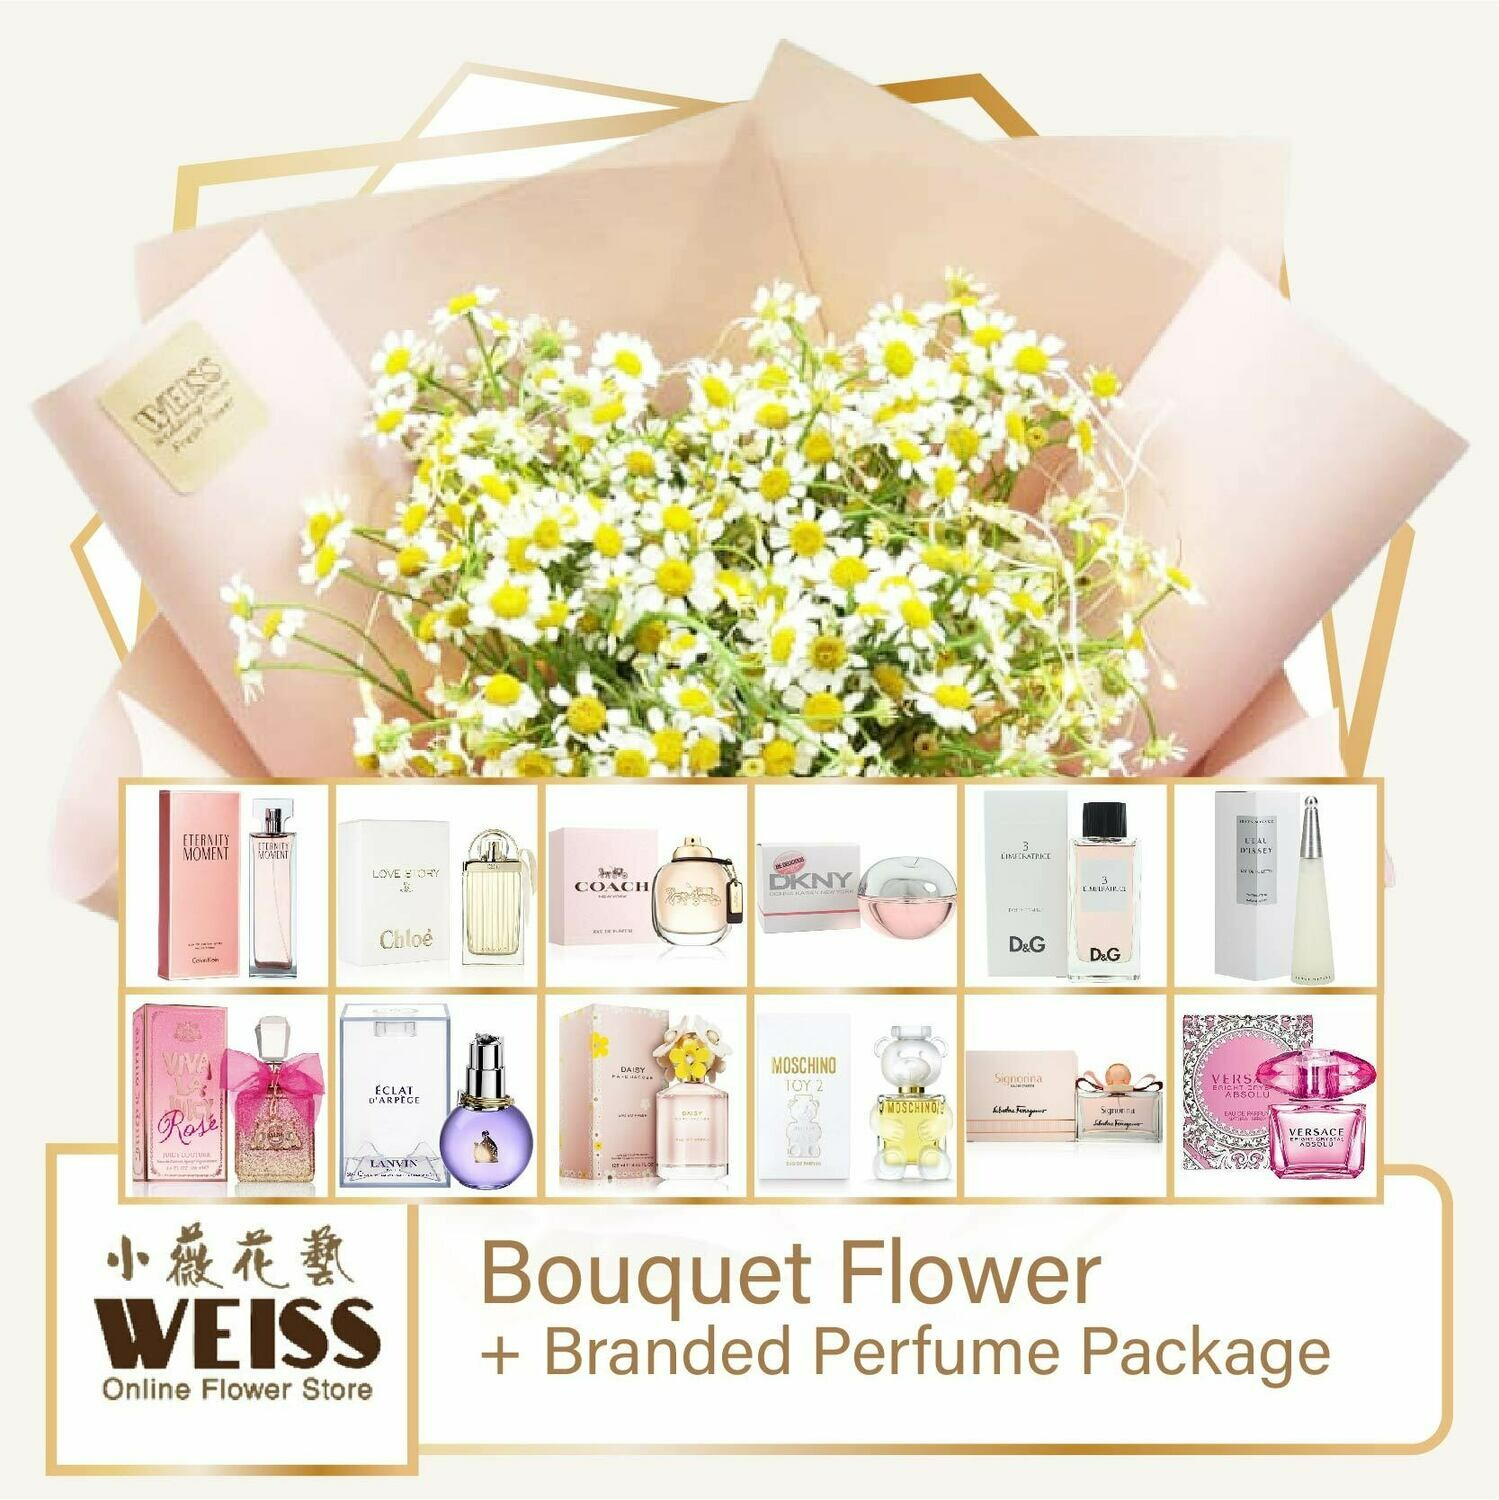 Weiss Florist Chamomile + Branded Perfume Package (Free Shipping! Only deliver in JB)